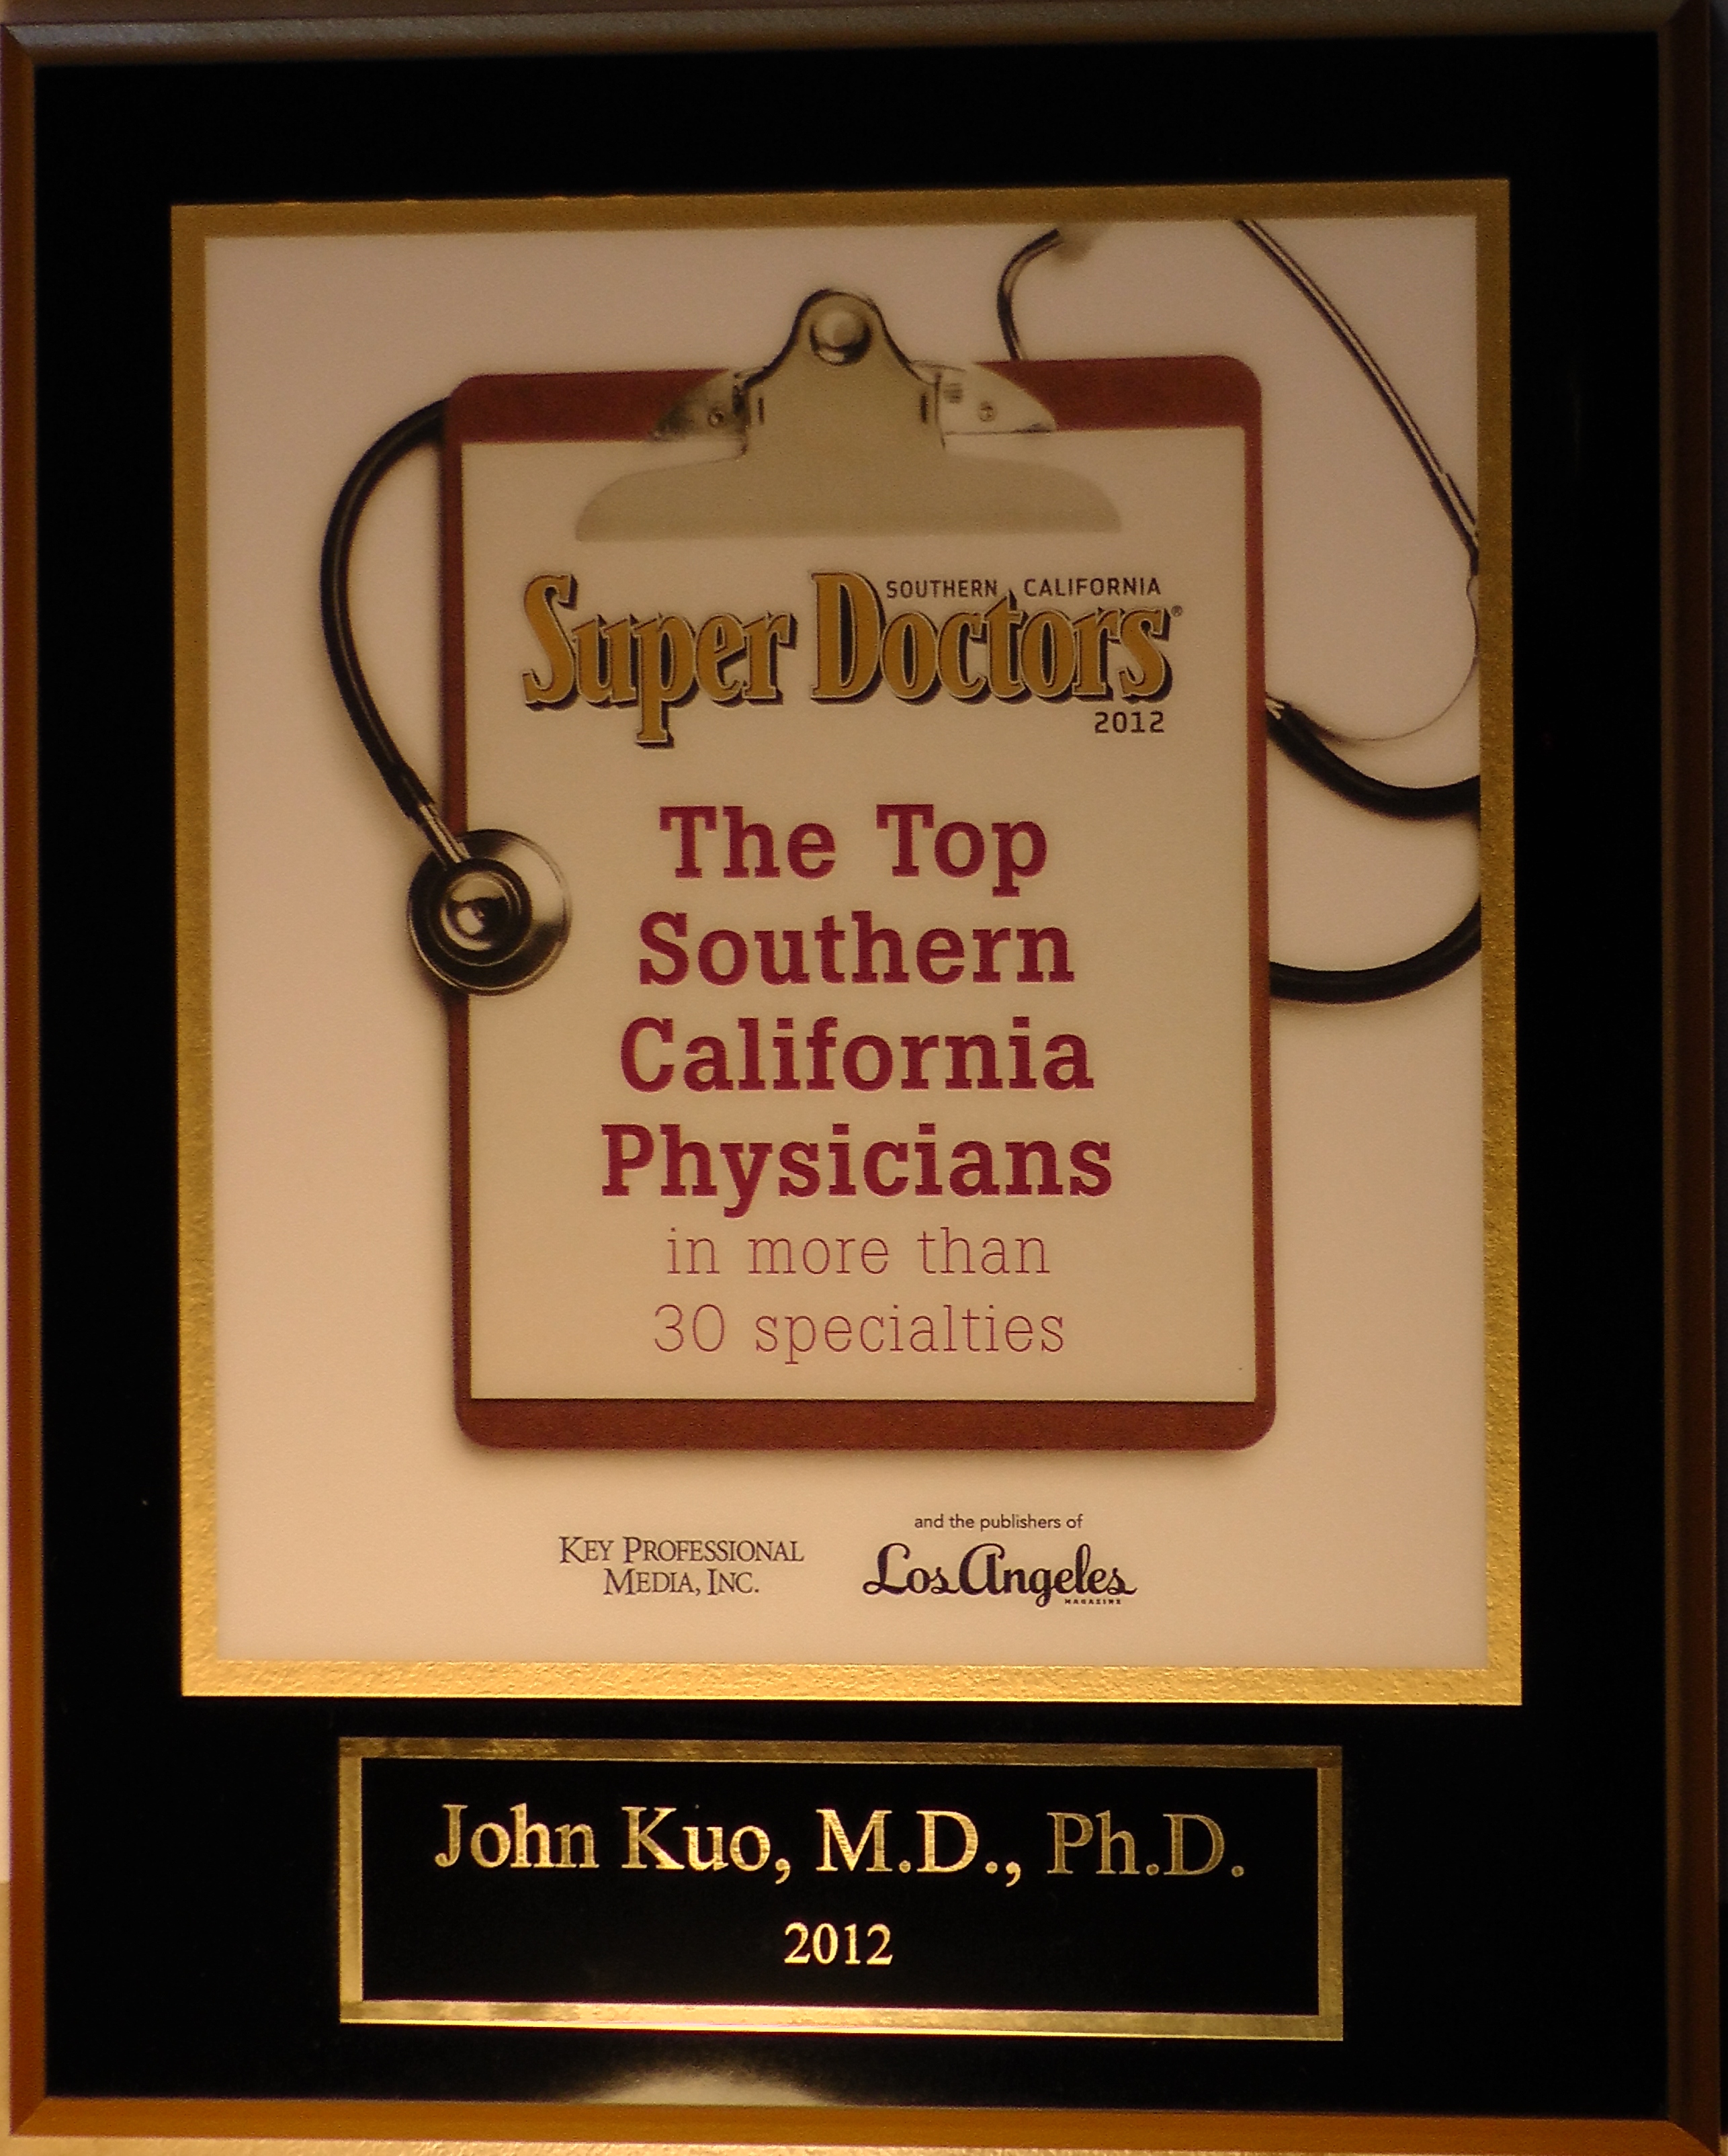 Dr. John Kuo IVF Infertility Fertility Reproductive MD Doctor Beverly Hills Los Angeles LA CA California 郭大庆 不孕症 试管婴儿 双博士 医生 洛杉矶 加州 郭大慶 中国 醫生 試管嬰兒 洛杉磯 Irvine Arcadia Alhambra Pasadena Diamond Bar Rowland Hacienda Heights Cost Treatment Fertilization baby birth